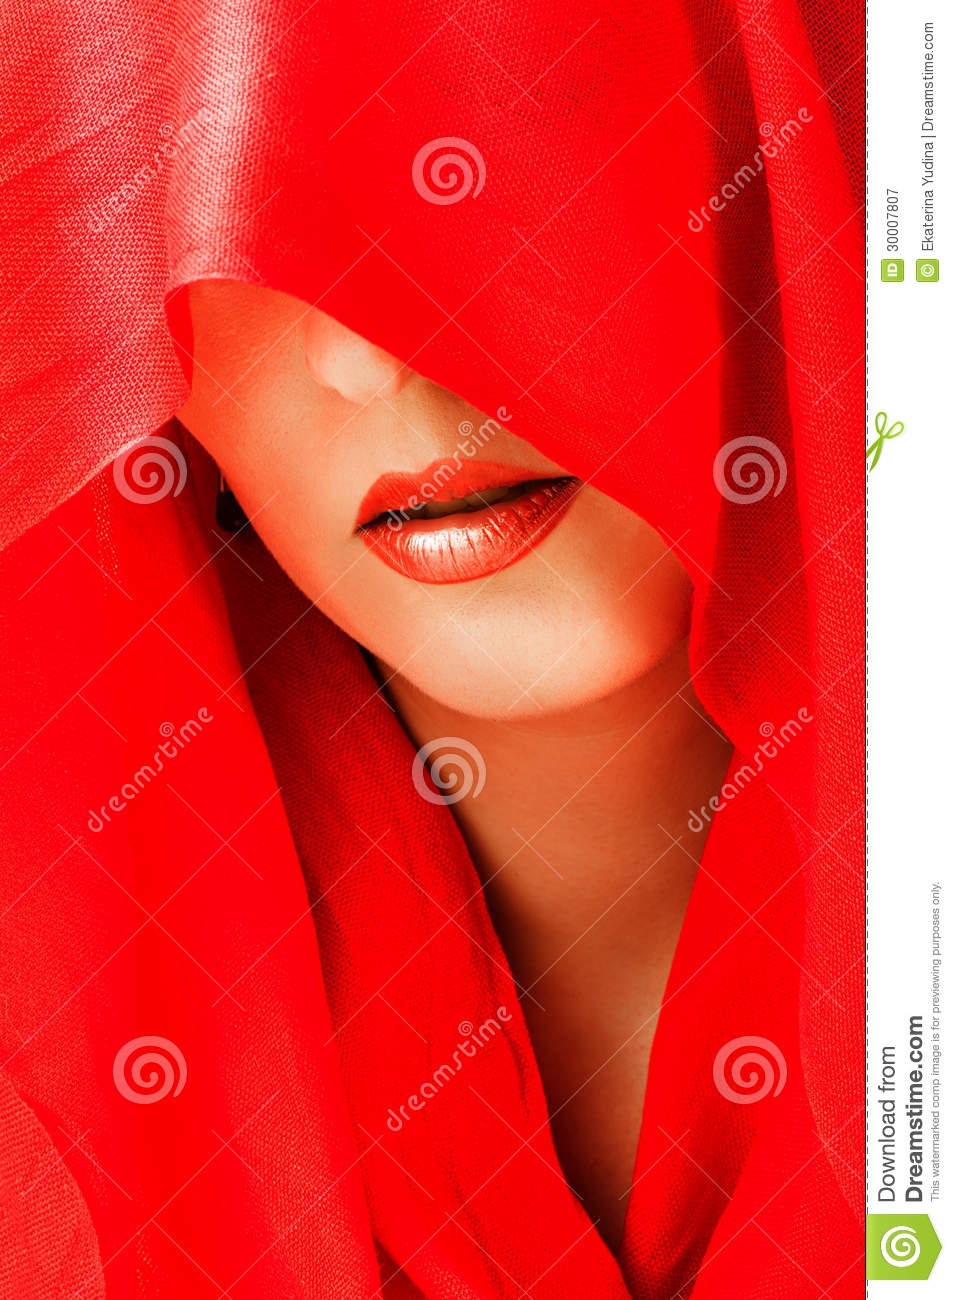 Red Scarf Covered With White Stars